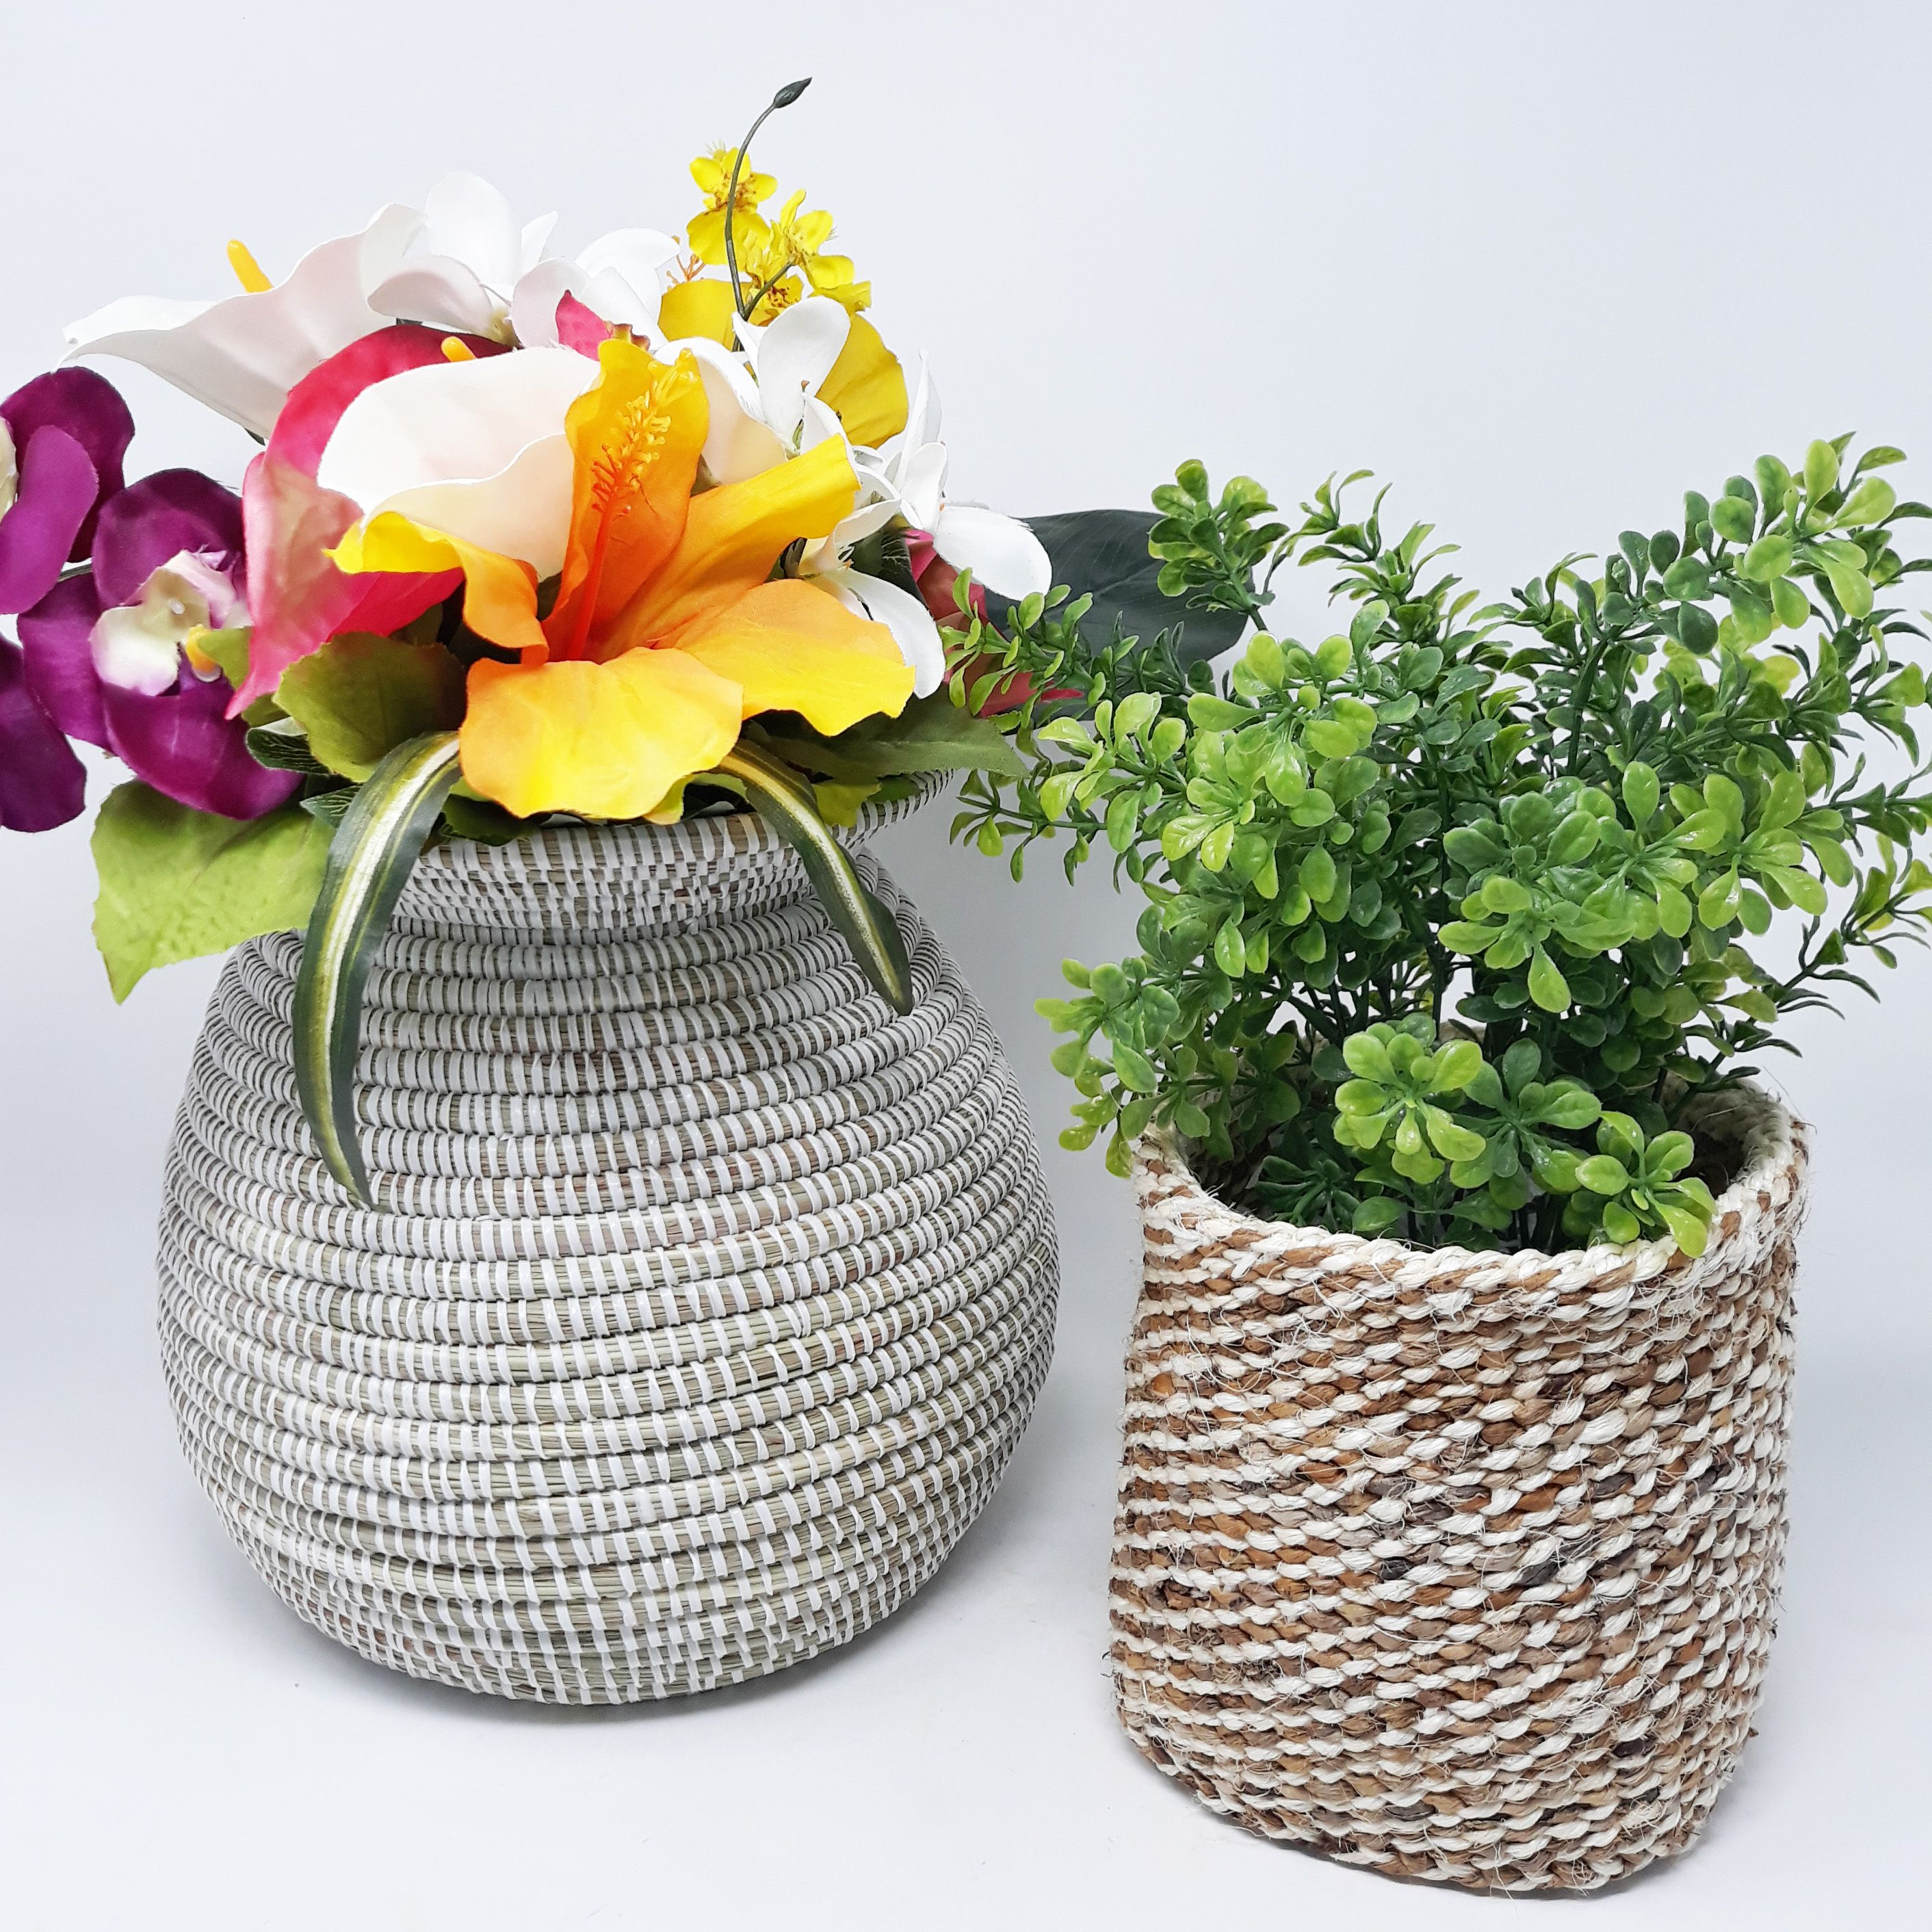 Bring a unique touch to any room with this beautiful combo